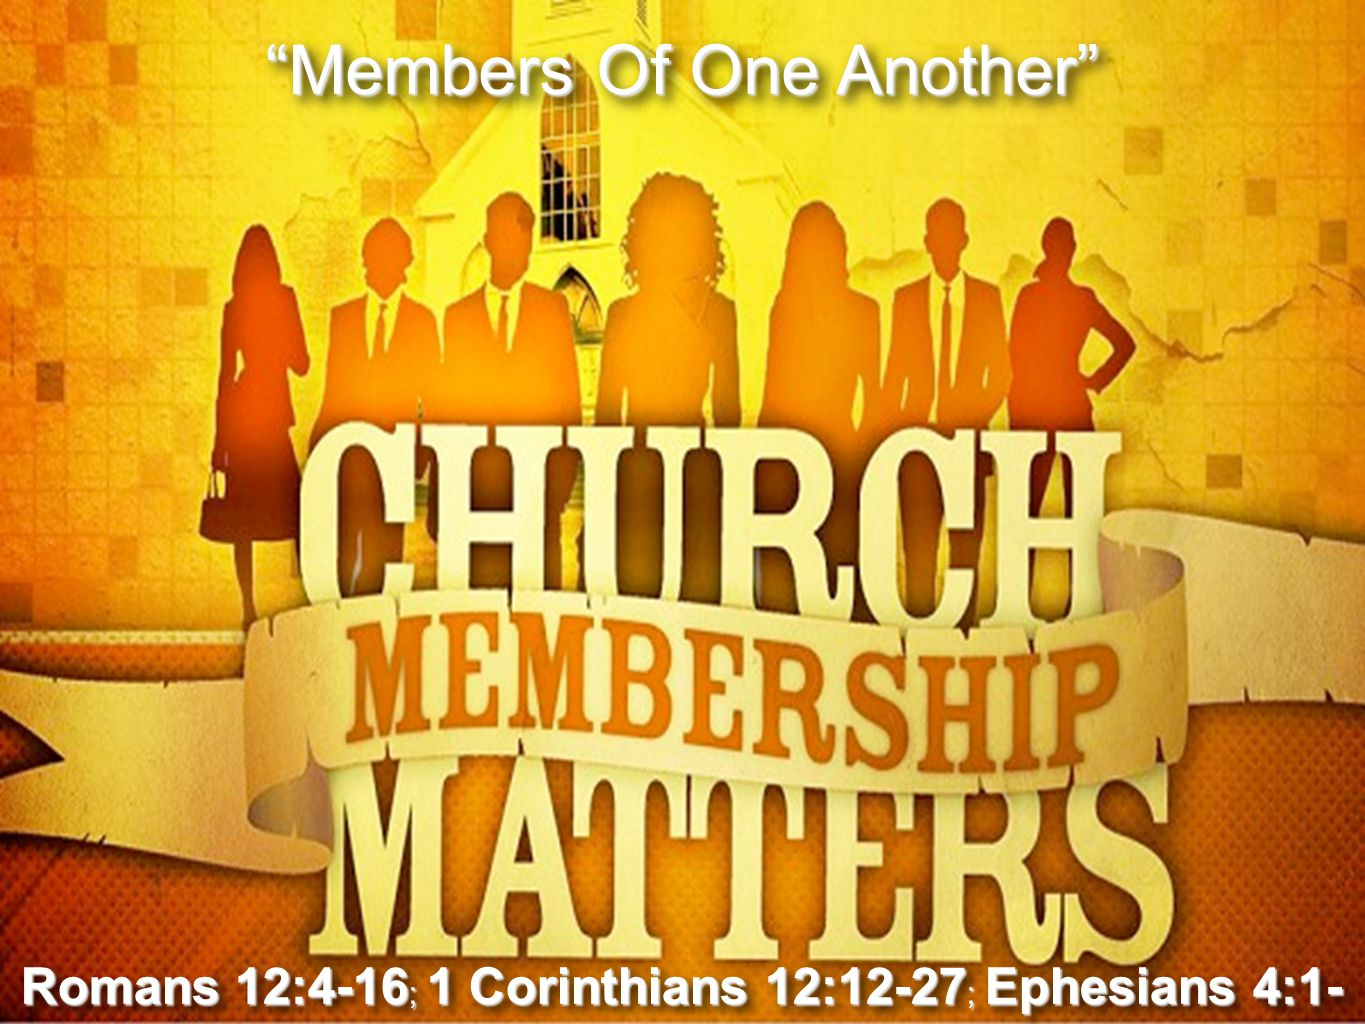 """1 Don McClainW. 65th St church of Christ - 9/16/2007 1 """"Members Of One Another"""" Romans 12:4-16 ; 1 Corinthians 12:12-27 ; Ephesians 4:1- 16"""